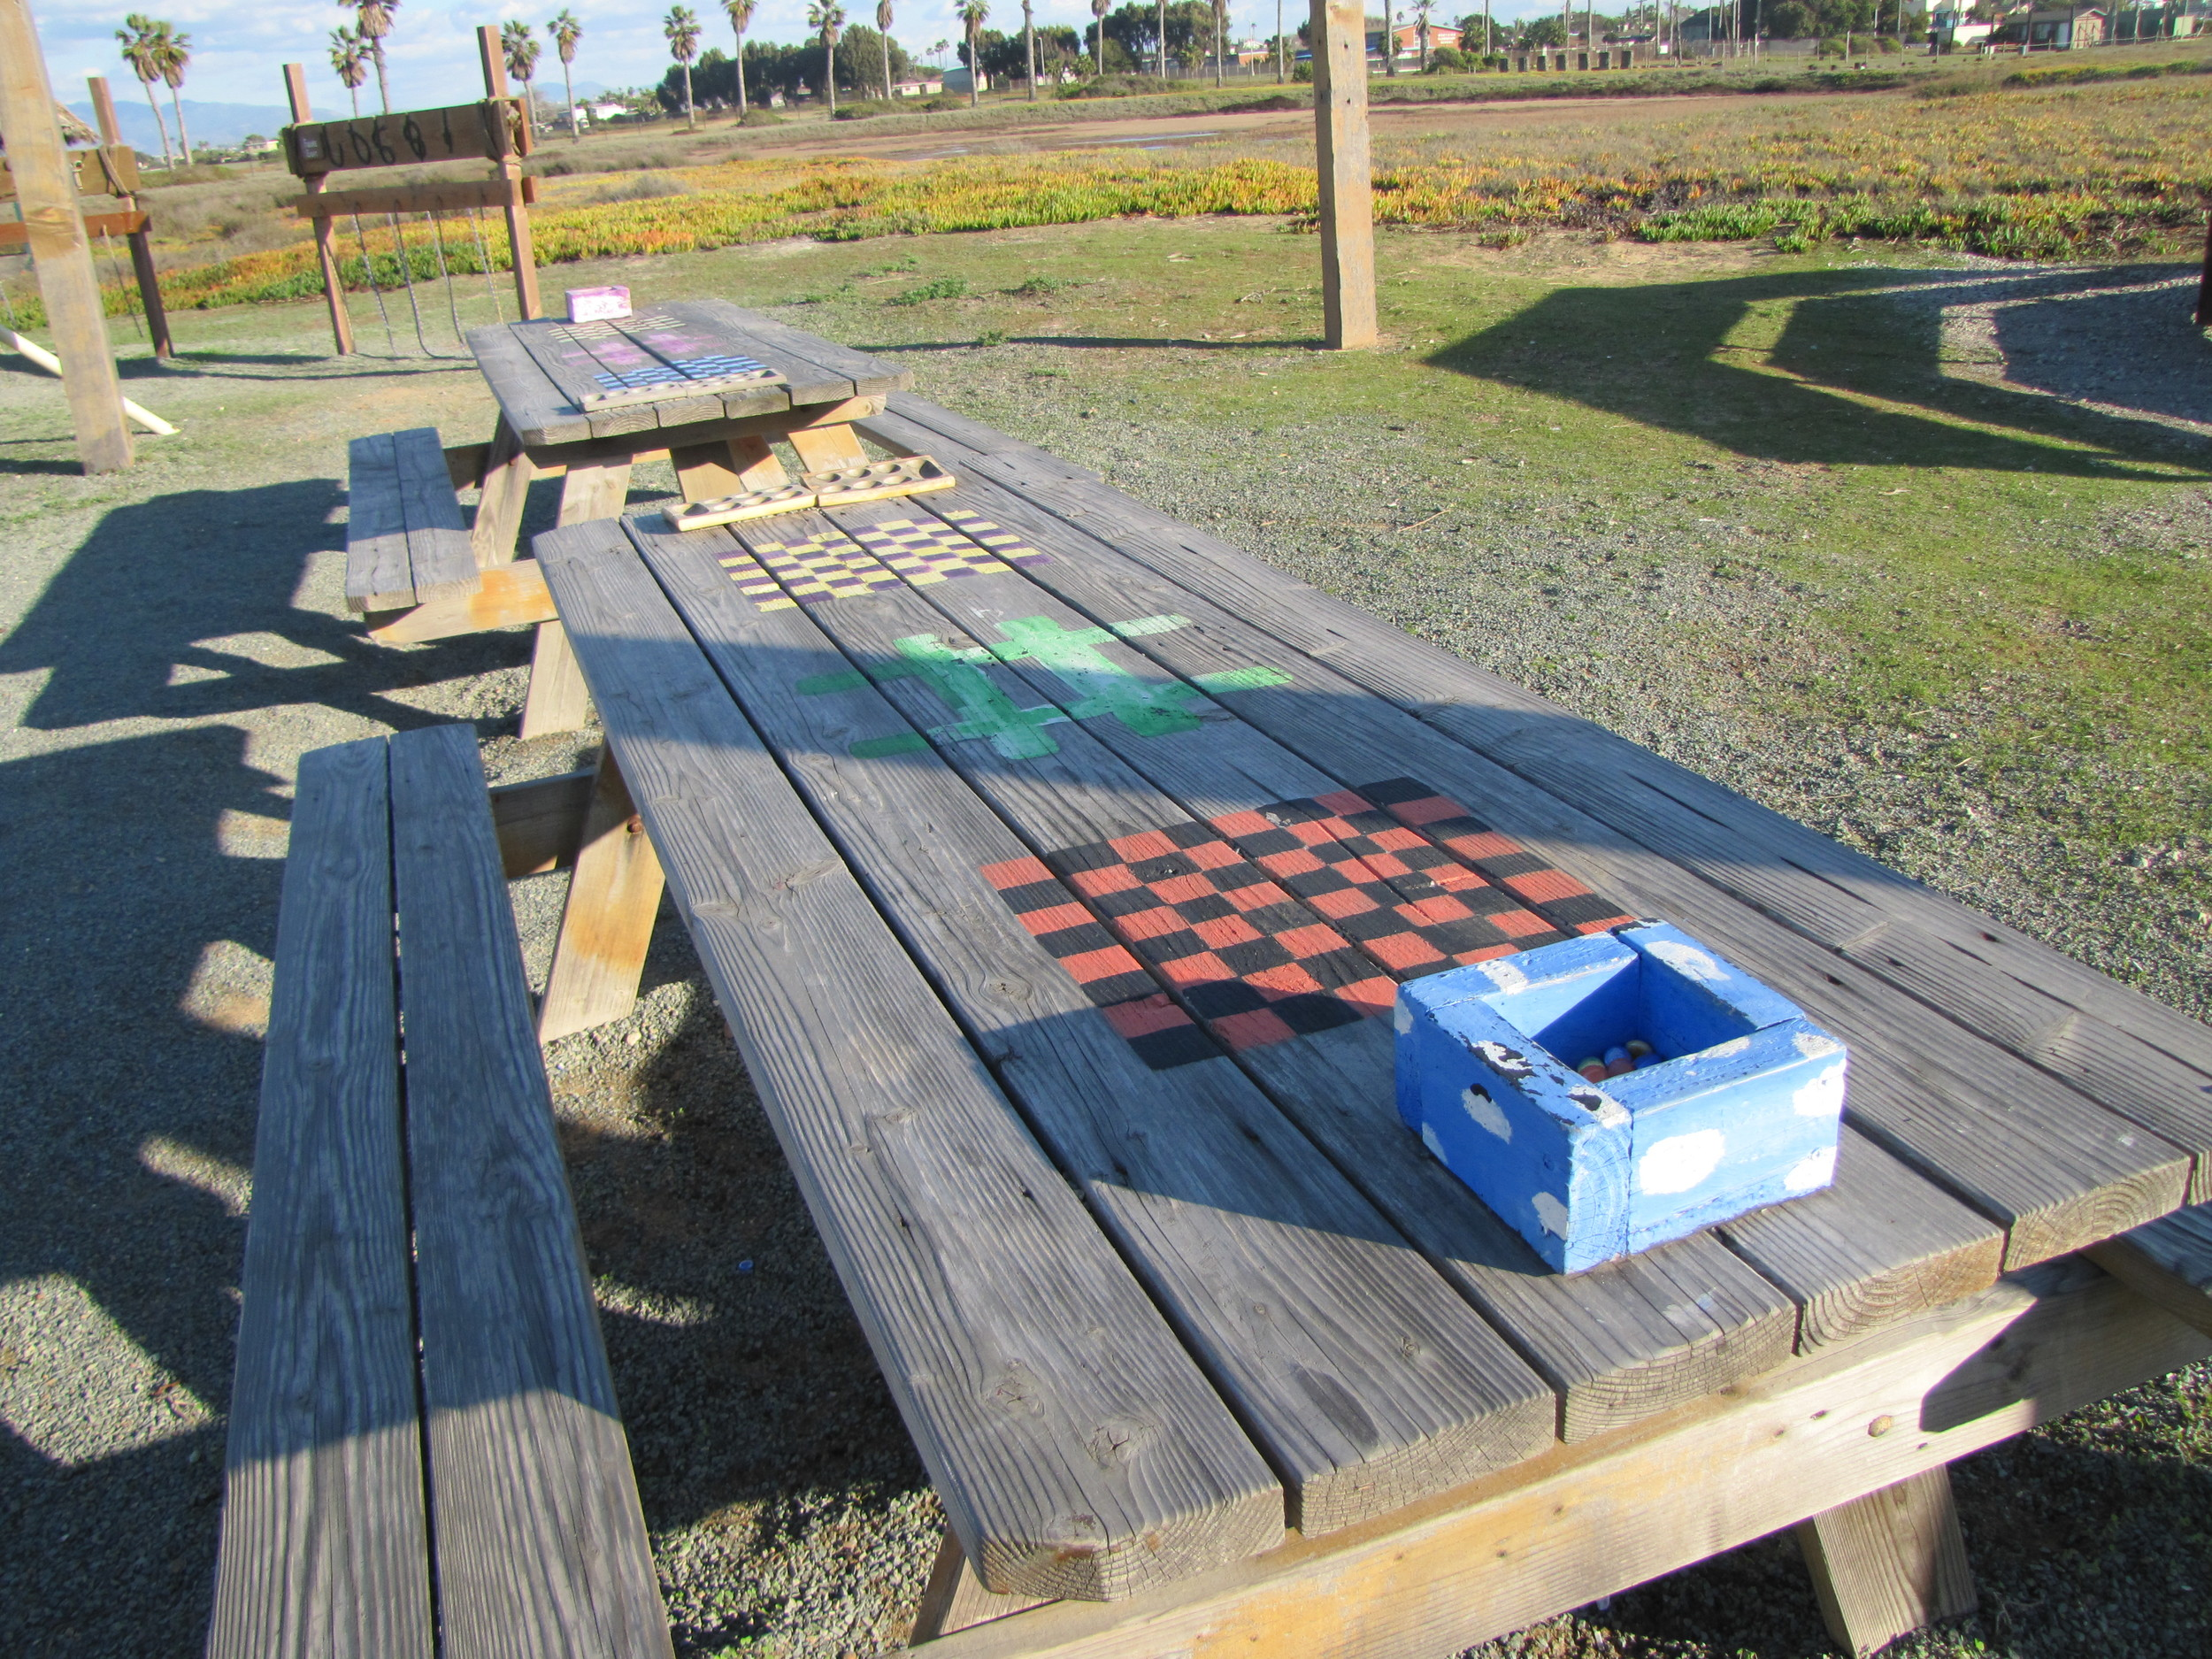 Picnic Table Games